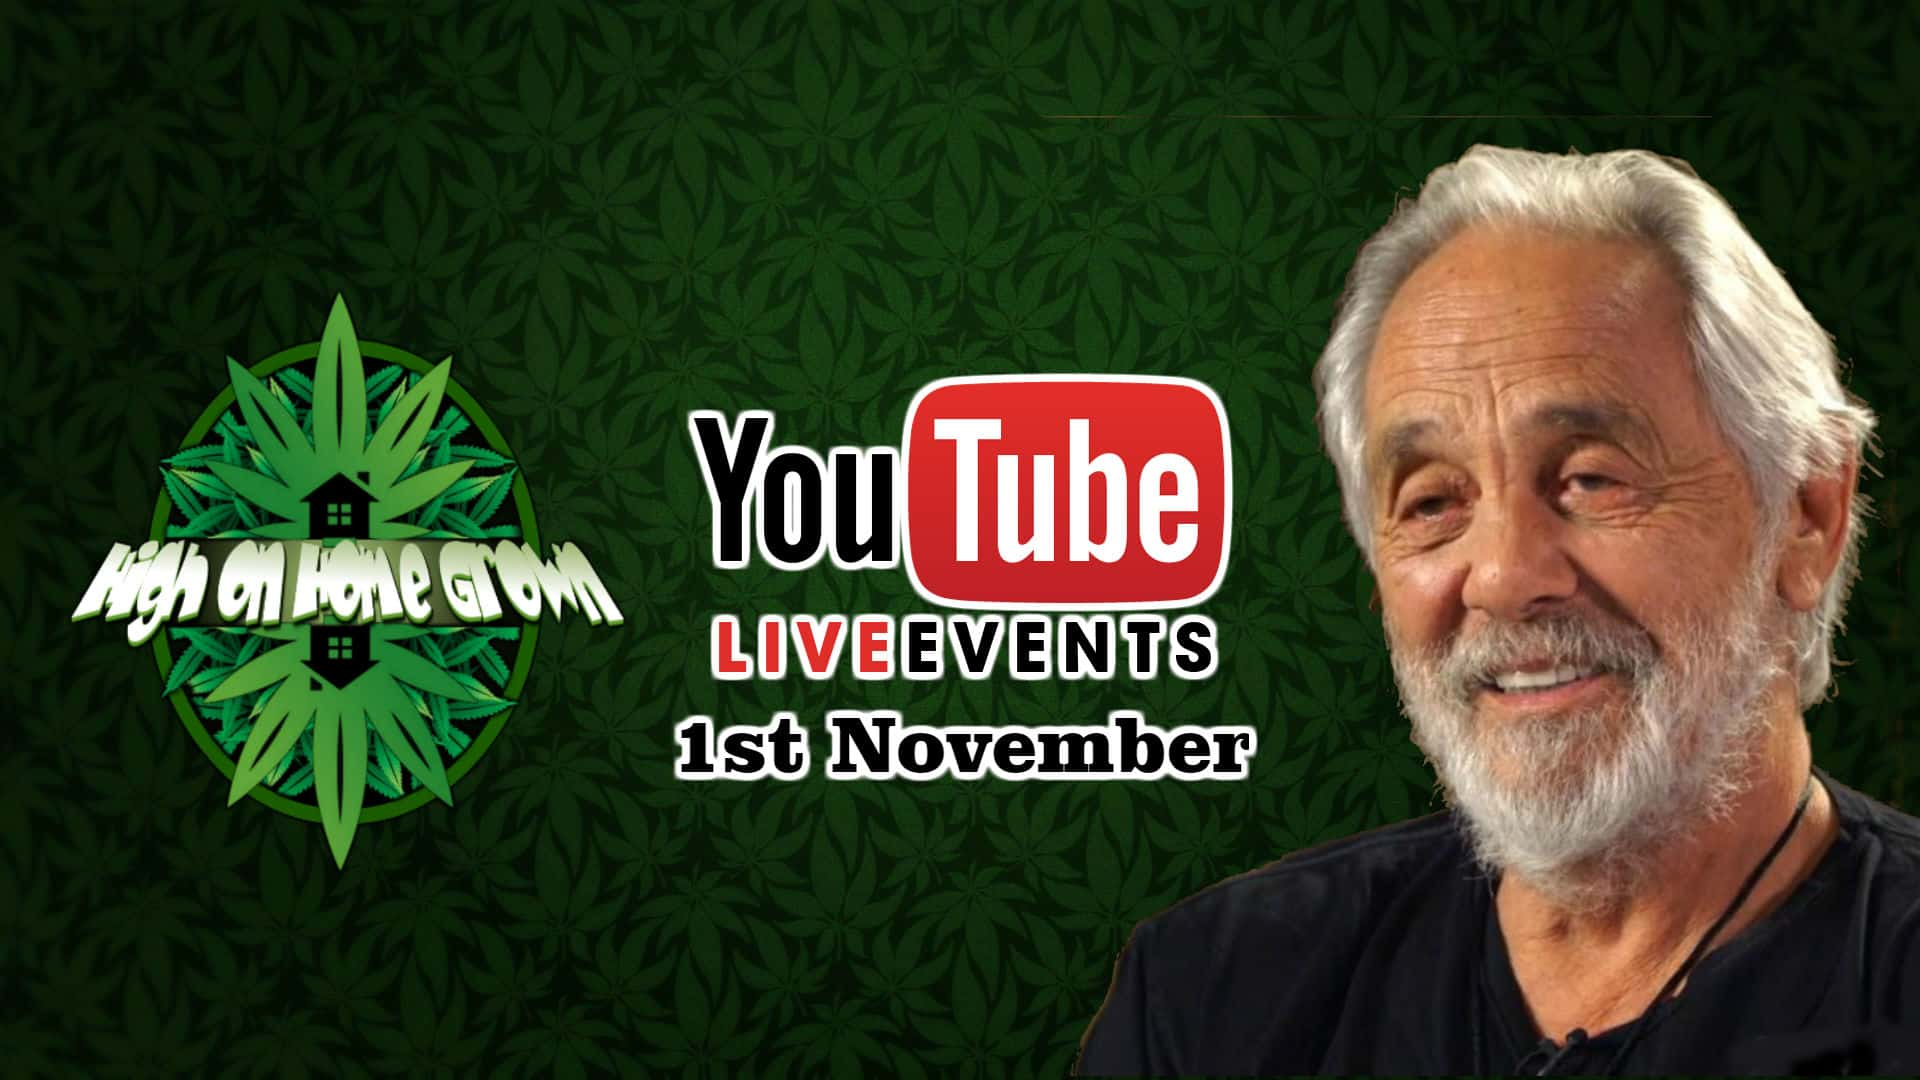 tommy chong, interview, high on home grown, stoner podcast, weed podcasts, percys grow room